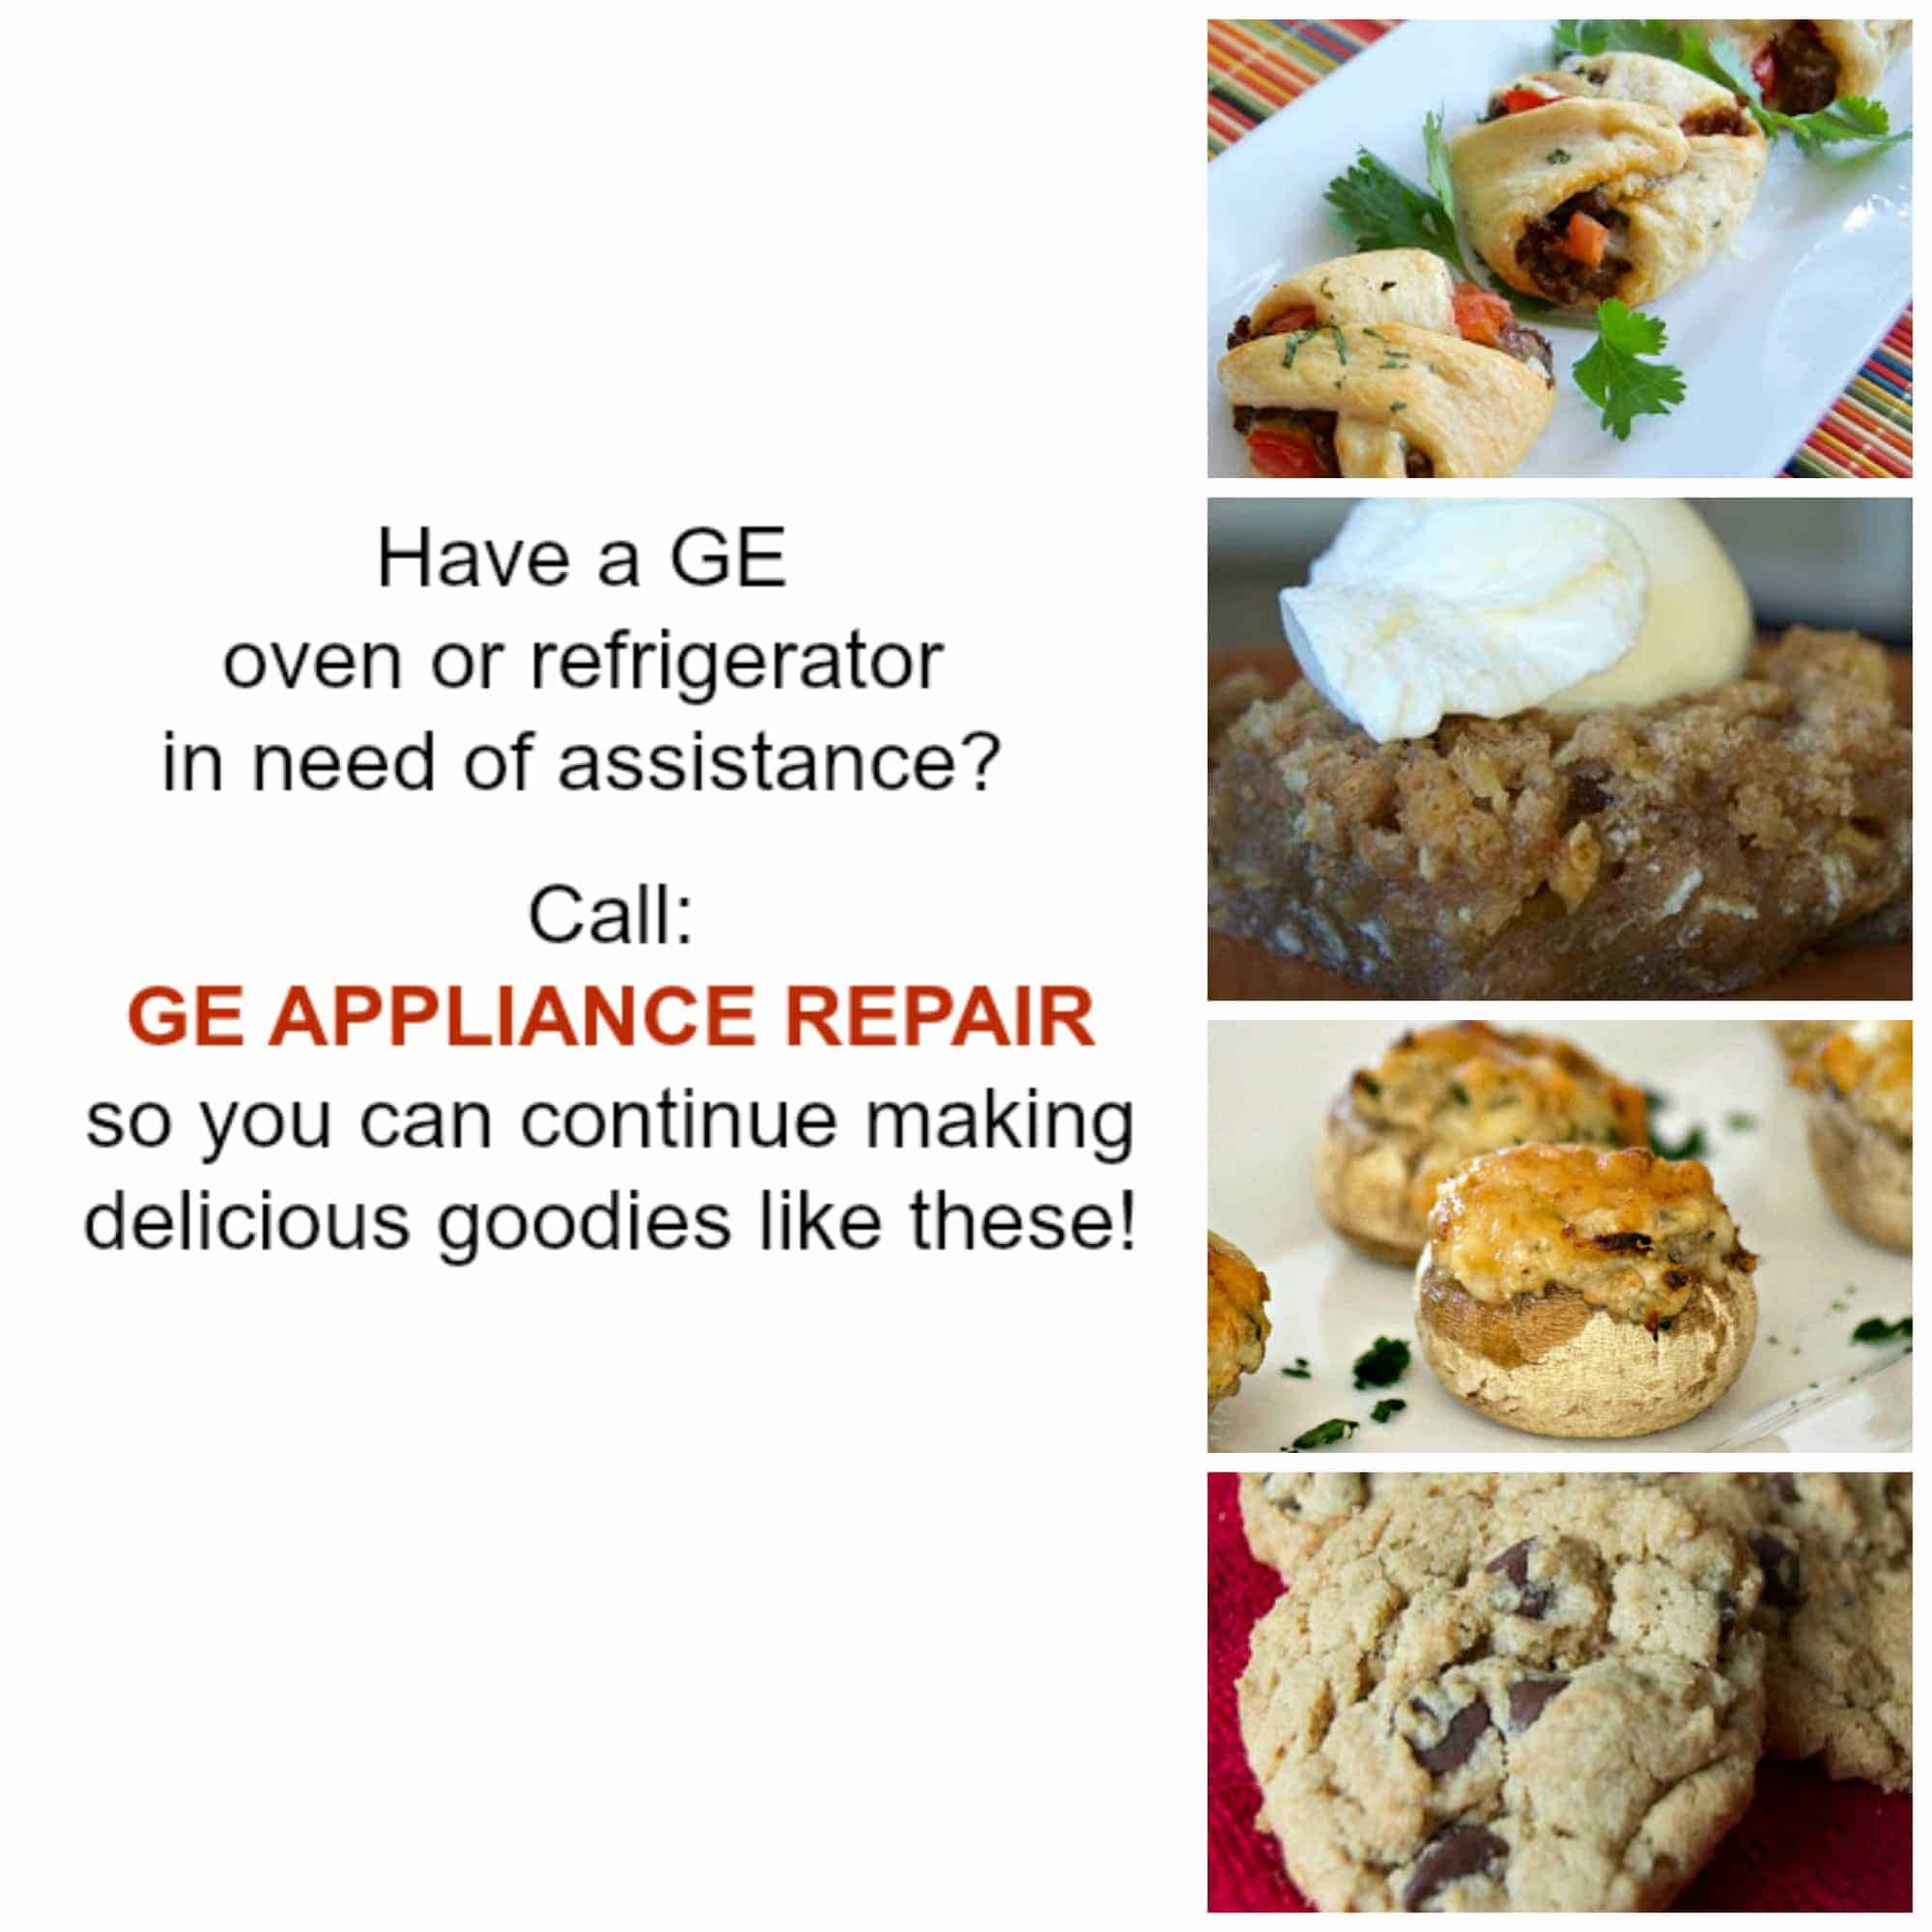 Have your General Electric Appliance repaired quickly and accurately by factory-trained technician in your area by GE Appliance Repair.